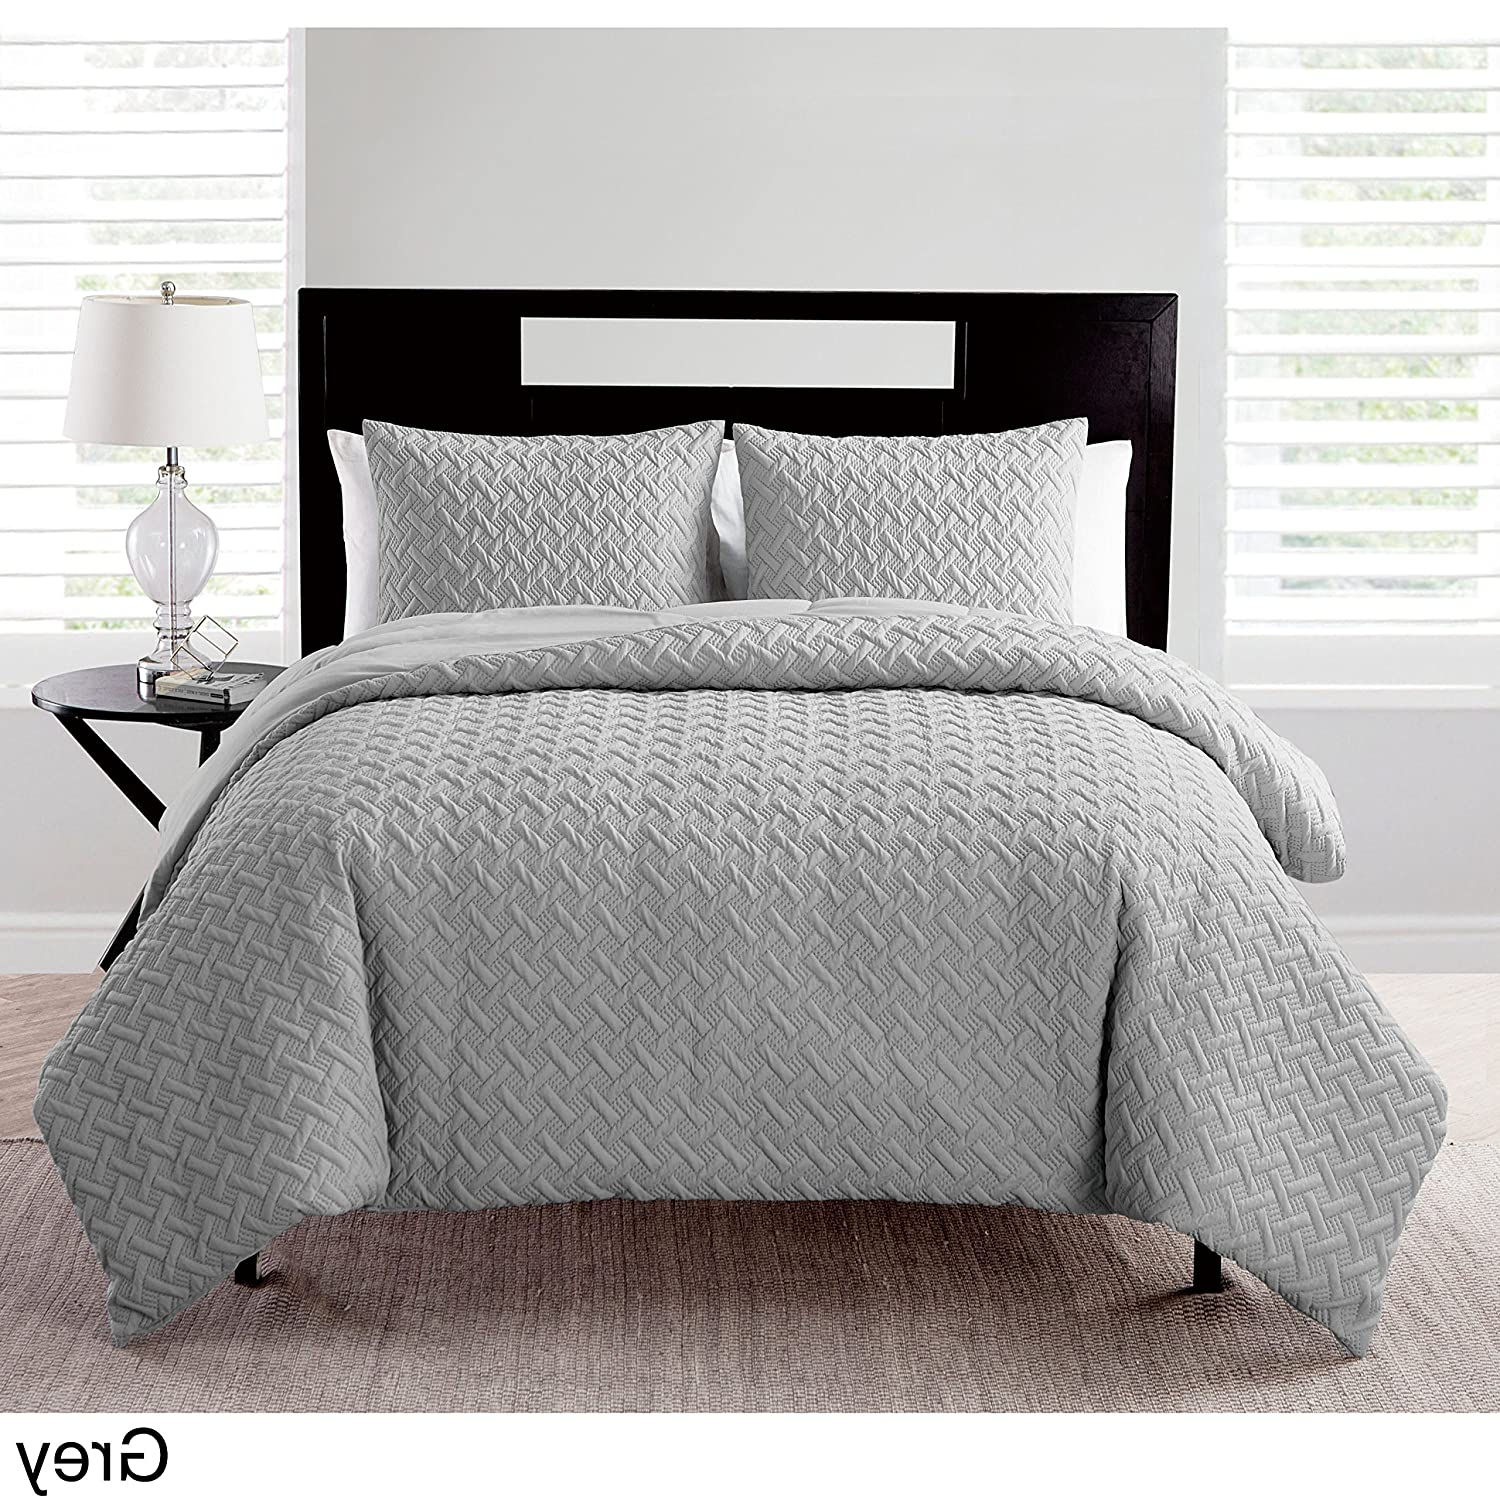 blanket the to lightweight cool down bedroom in how during comforter summer keep